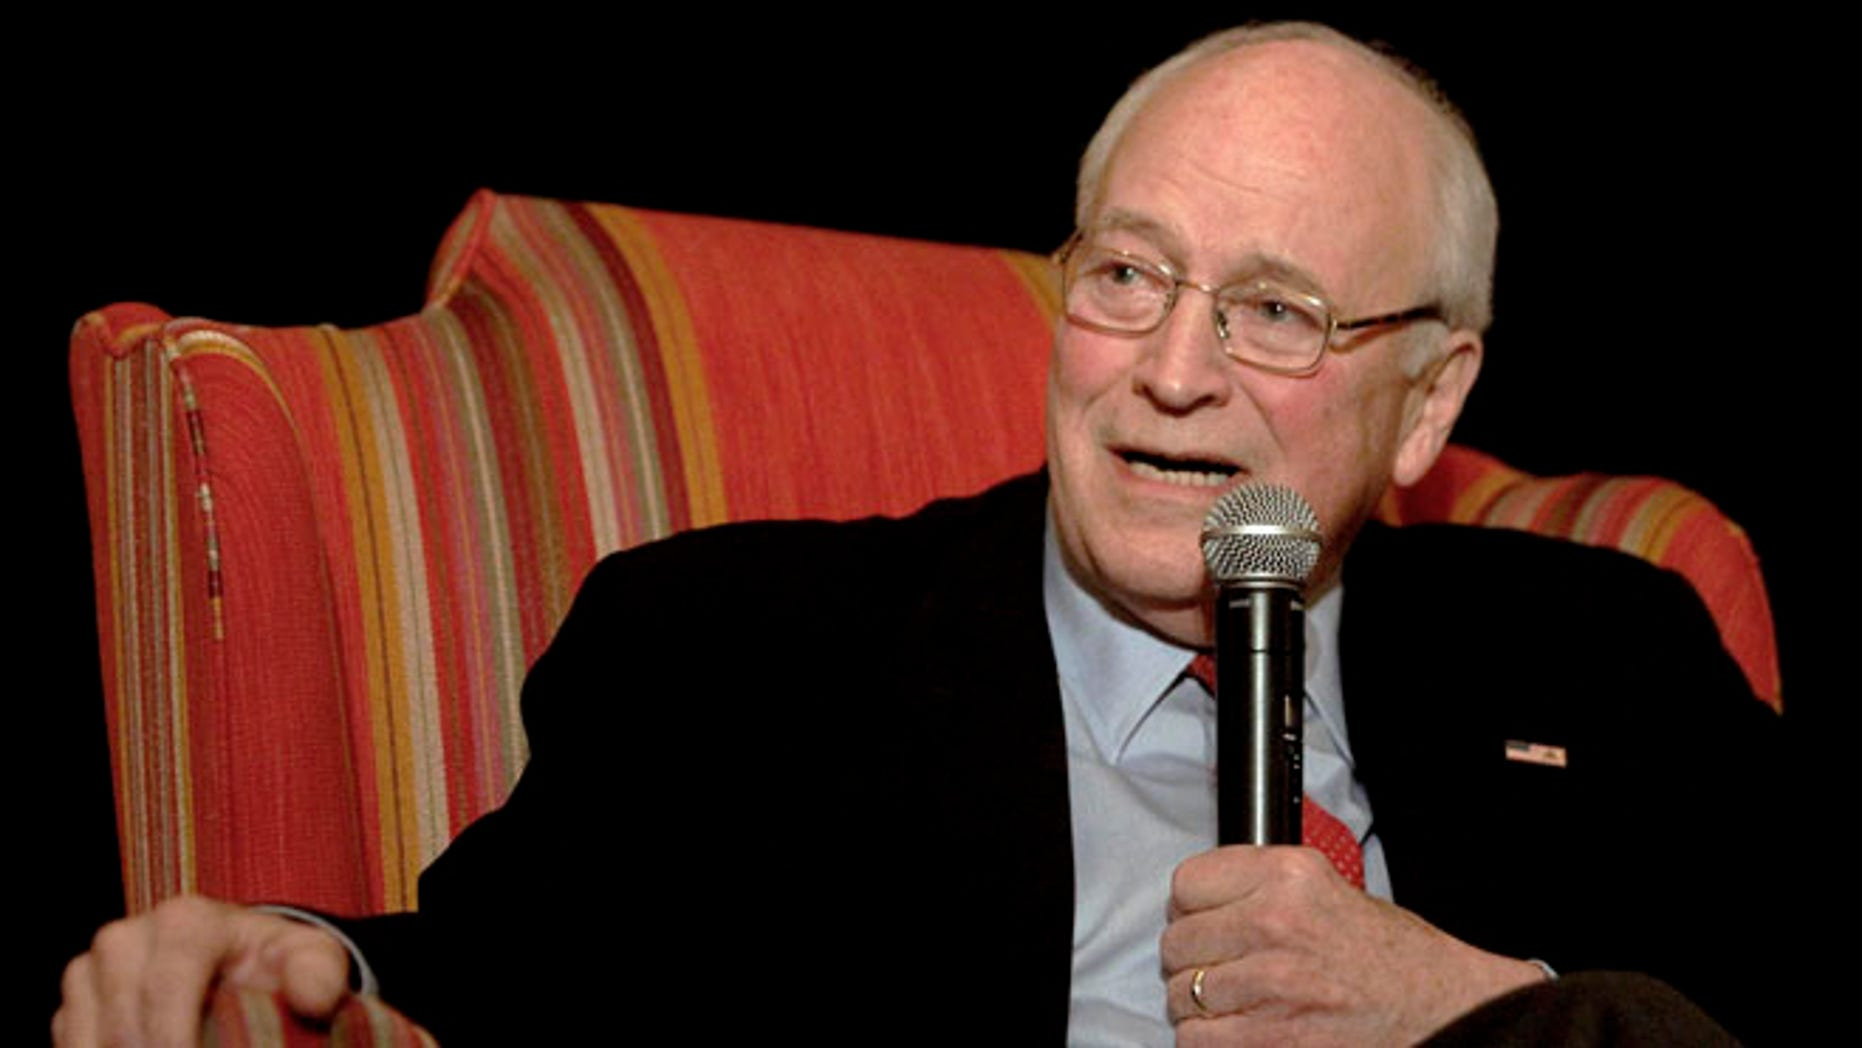 April 14, 2012: Former Vice President Dick Cheney speaks at the Wyoming Republican state convention at the Little America Hotel and Resort in Cheyenne, Wyo.